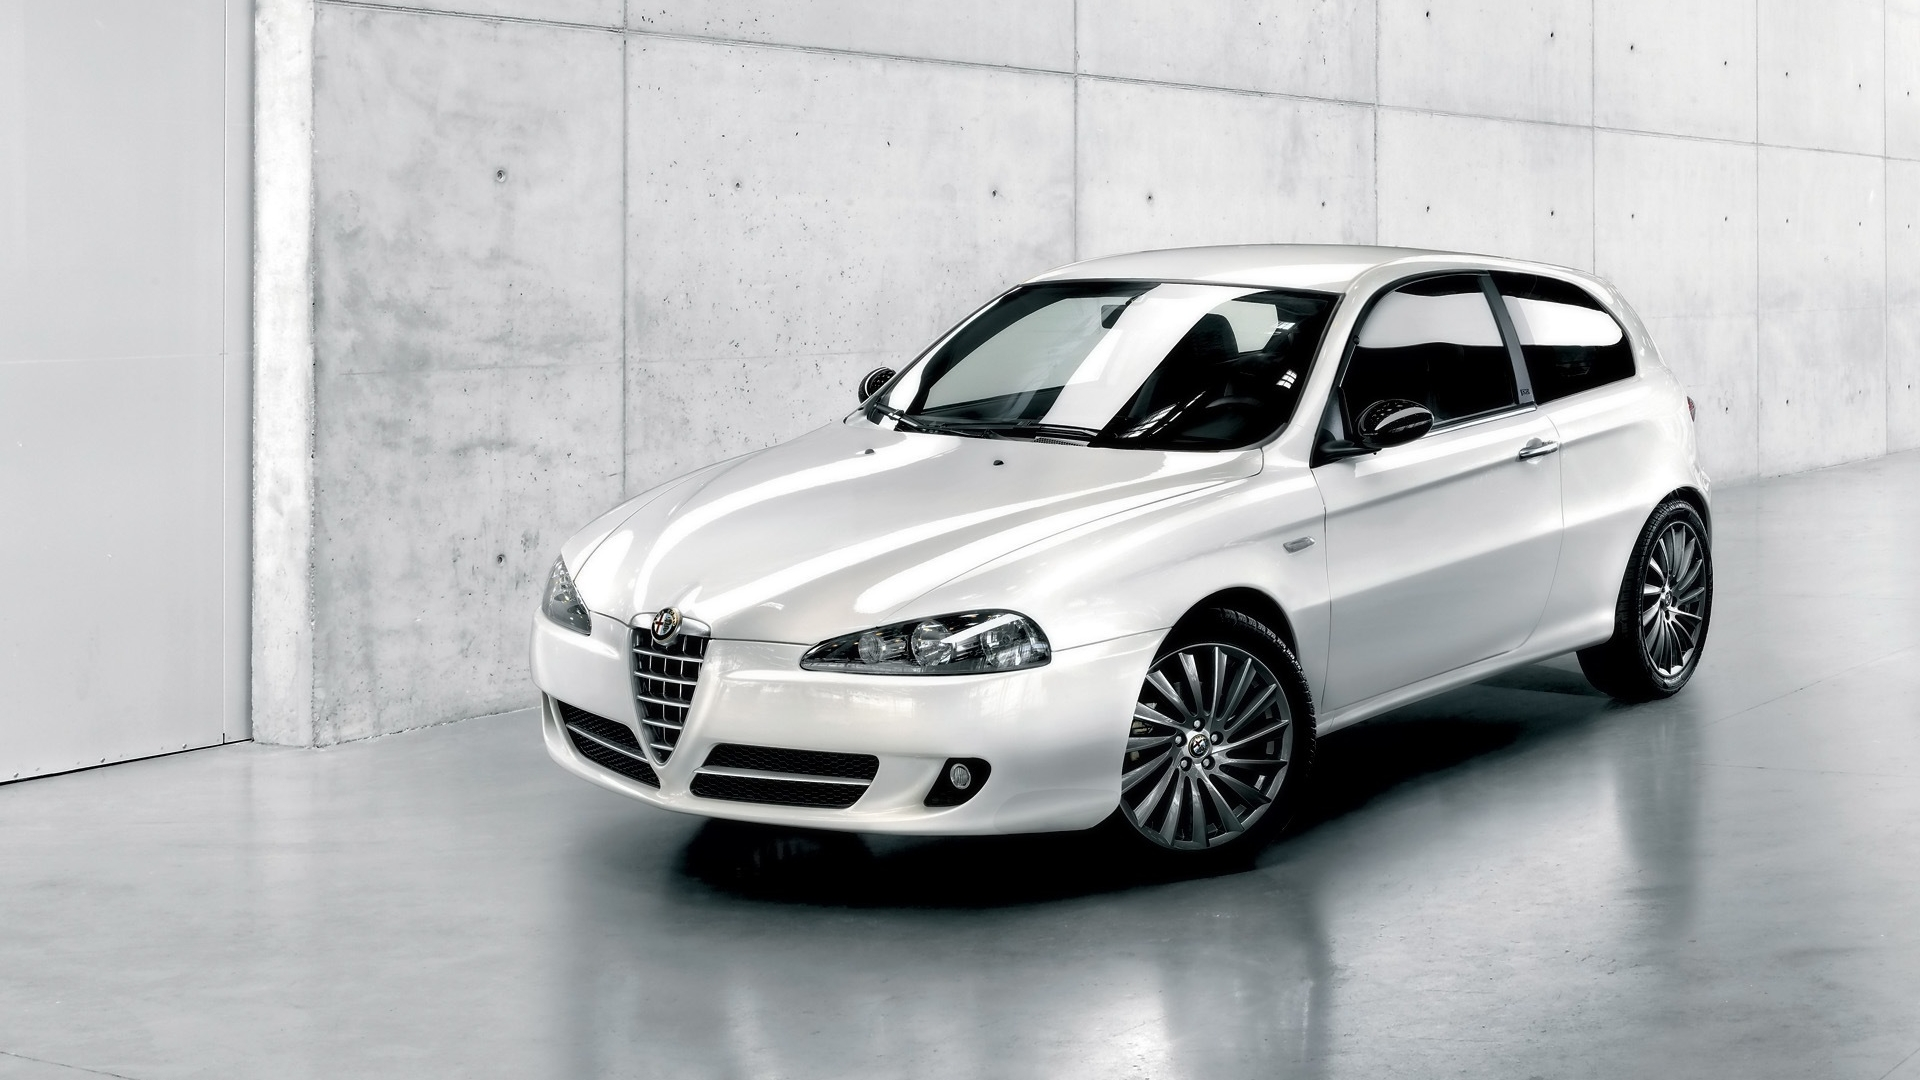 1920x1080 - Alfa Romeo 147 Wallpapers 2